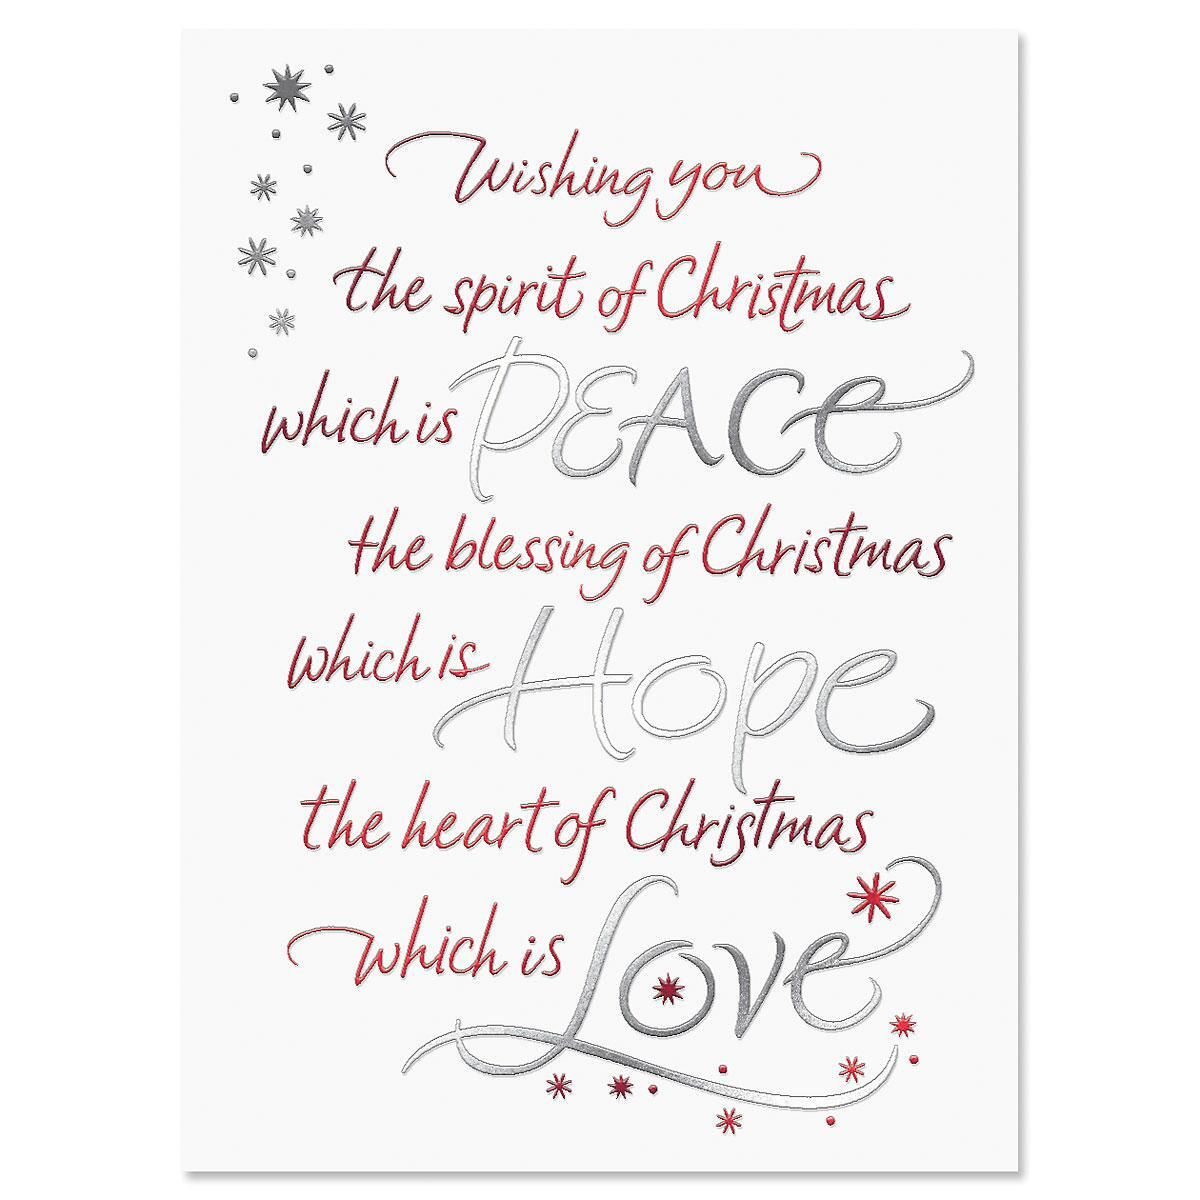 Christmas Wish Christmas Cards - Personalized